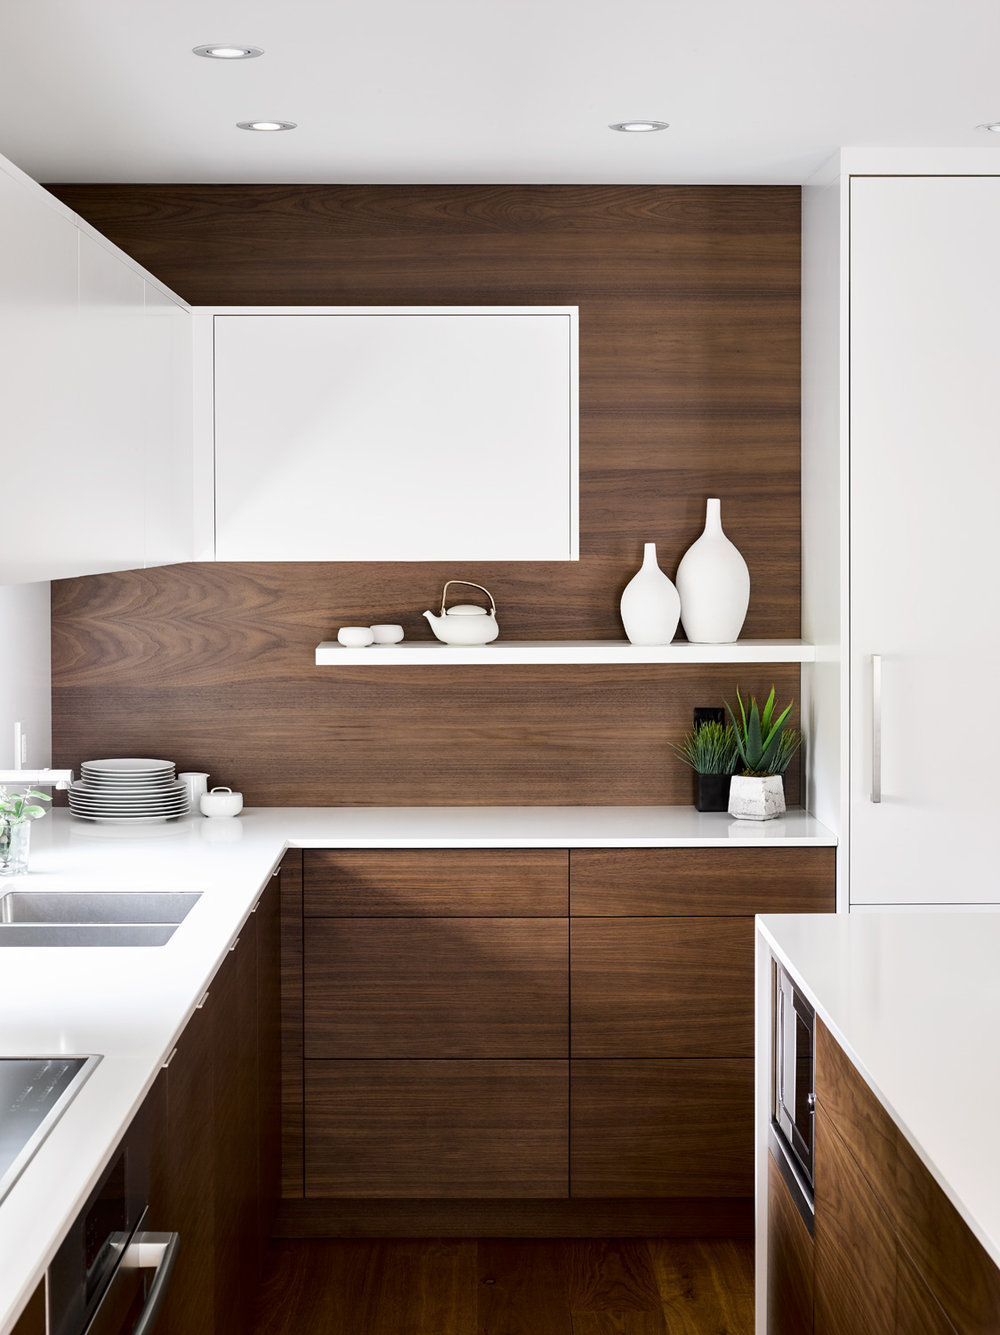 White Cabinetry with Walnut Backsplash